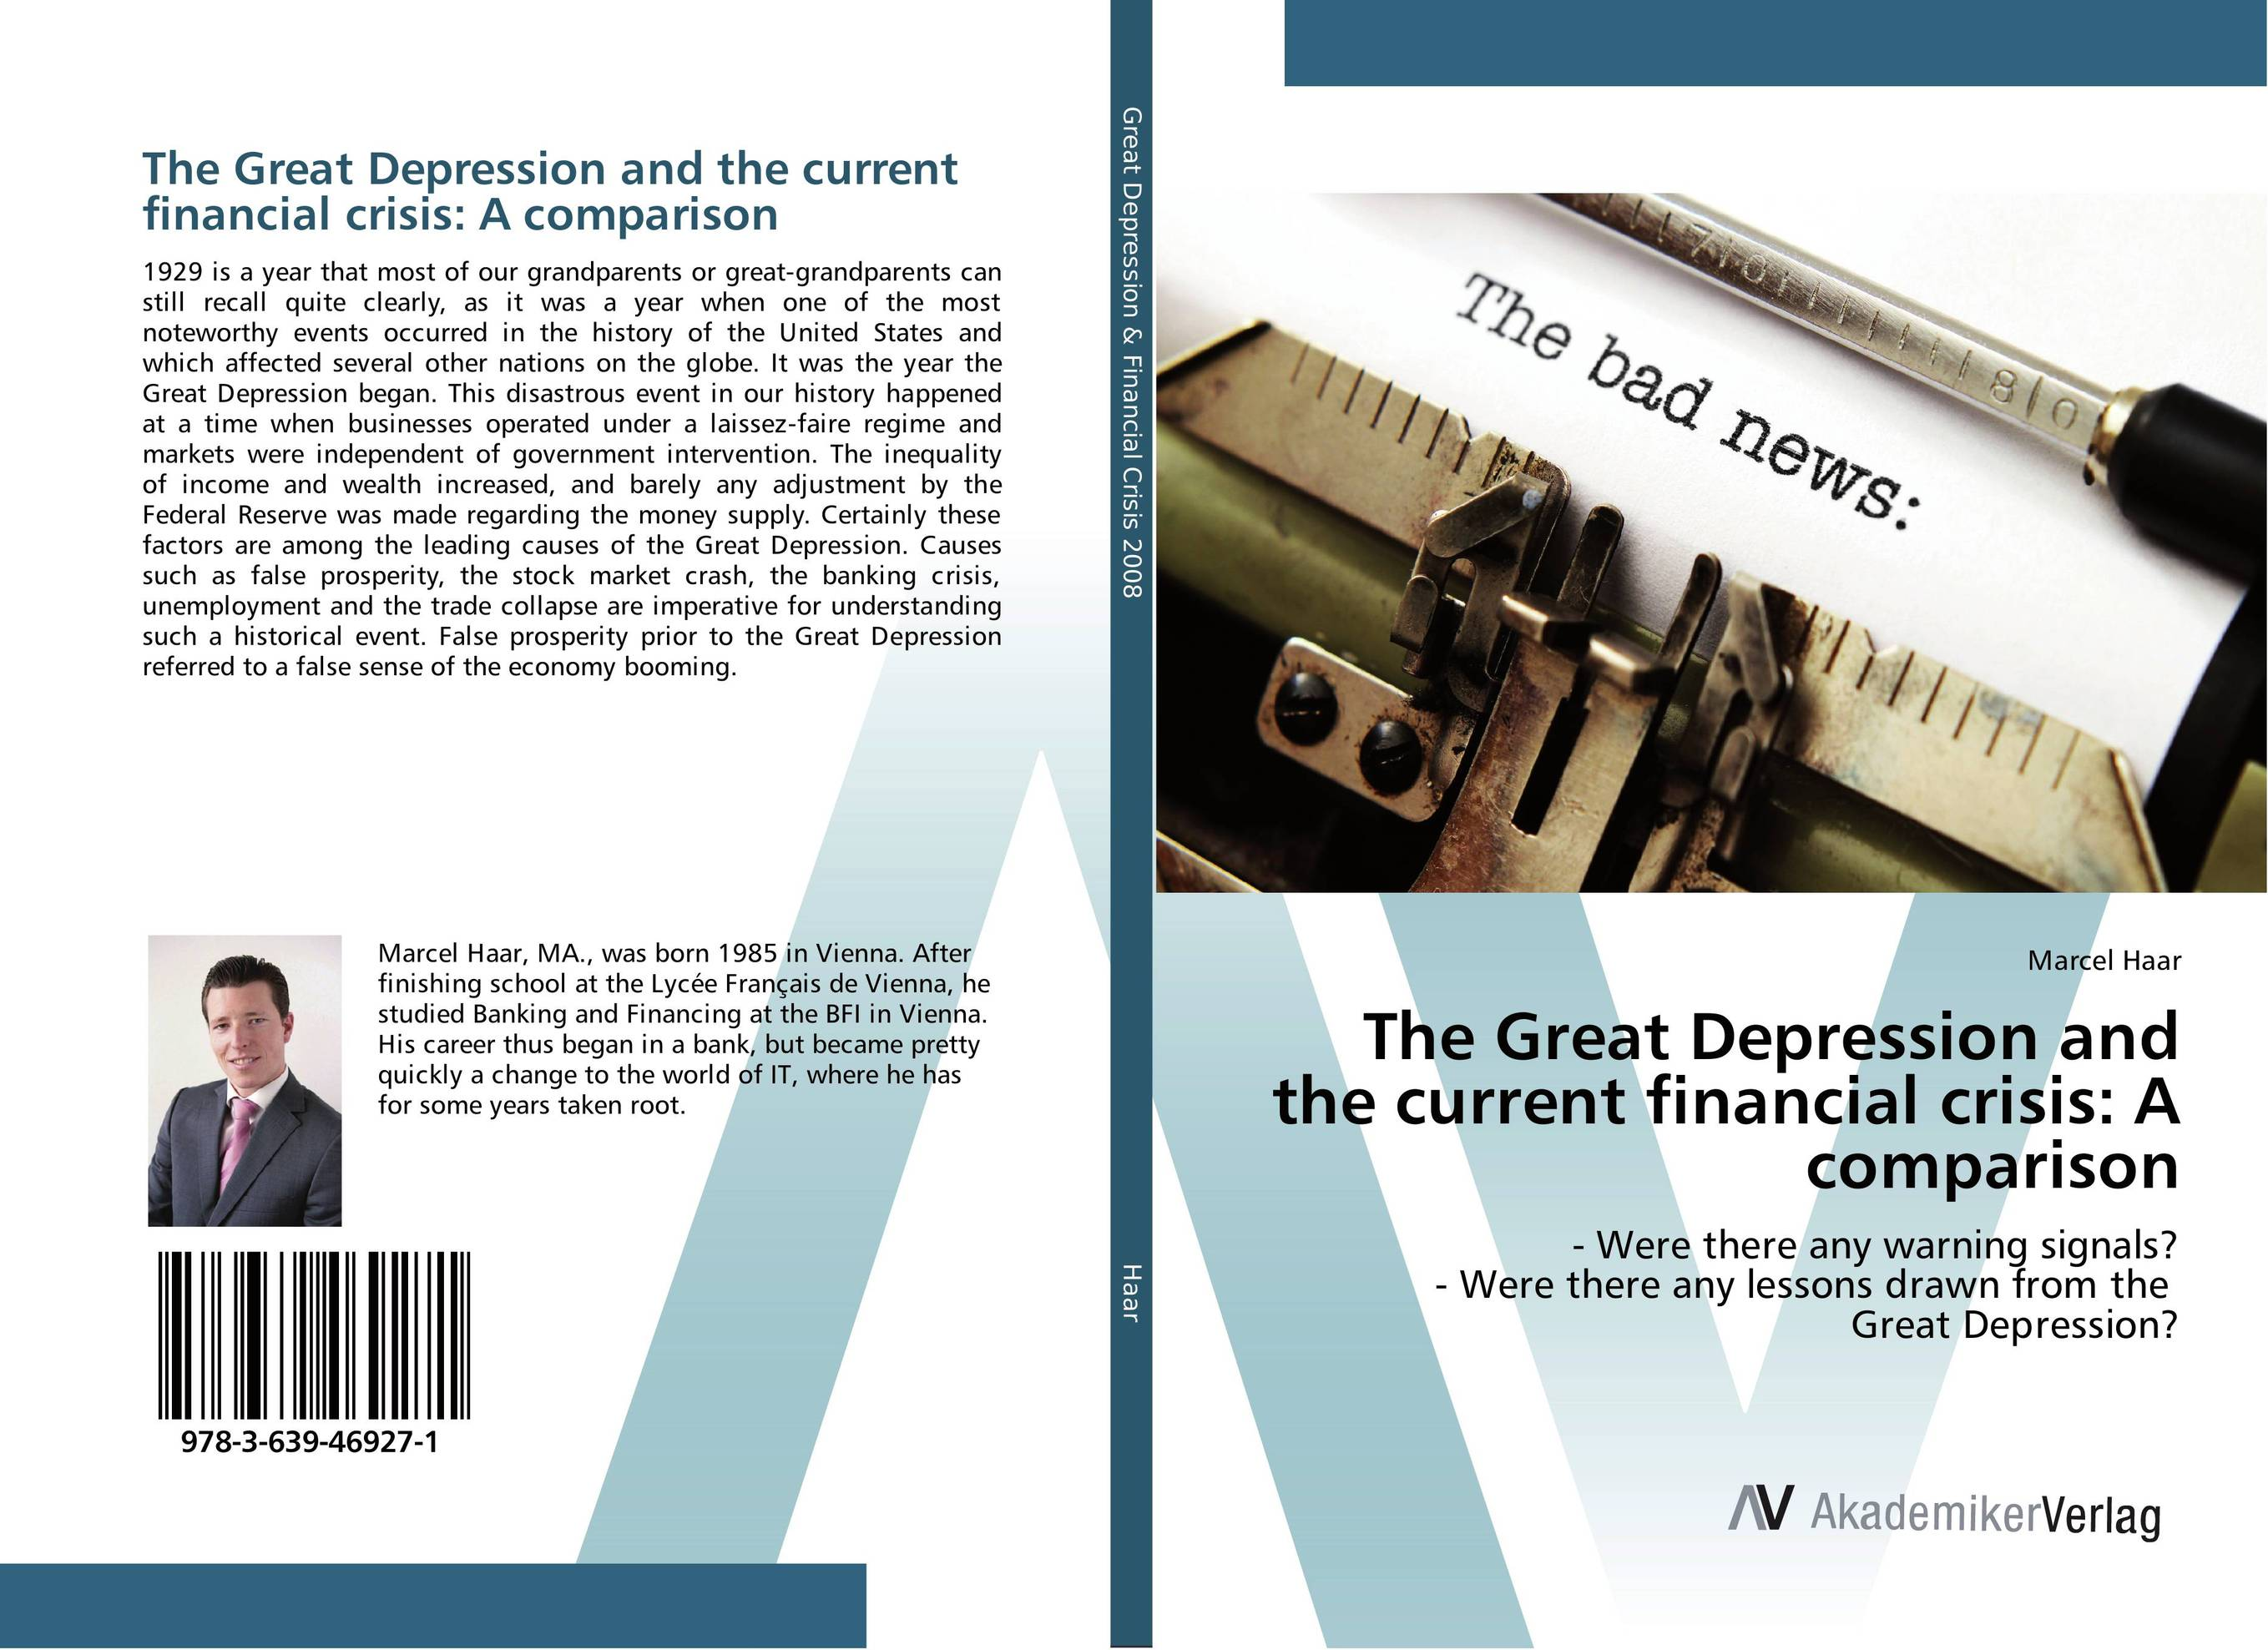 The Great Depression and the current financial crisis: A comparison